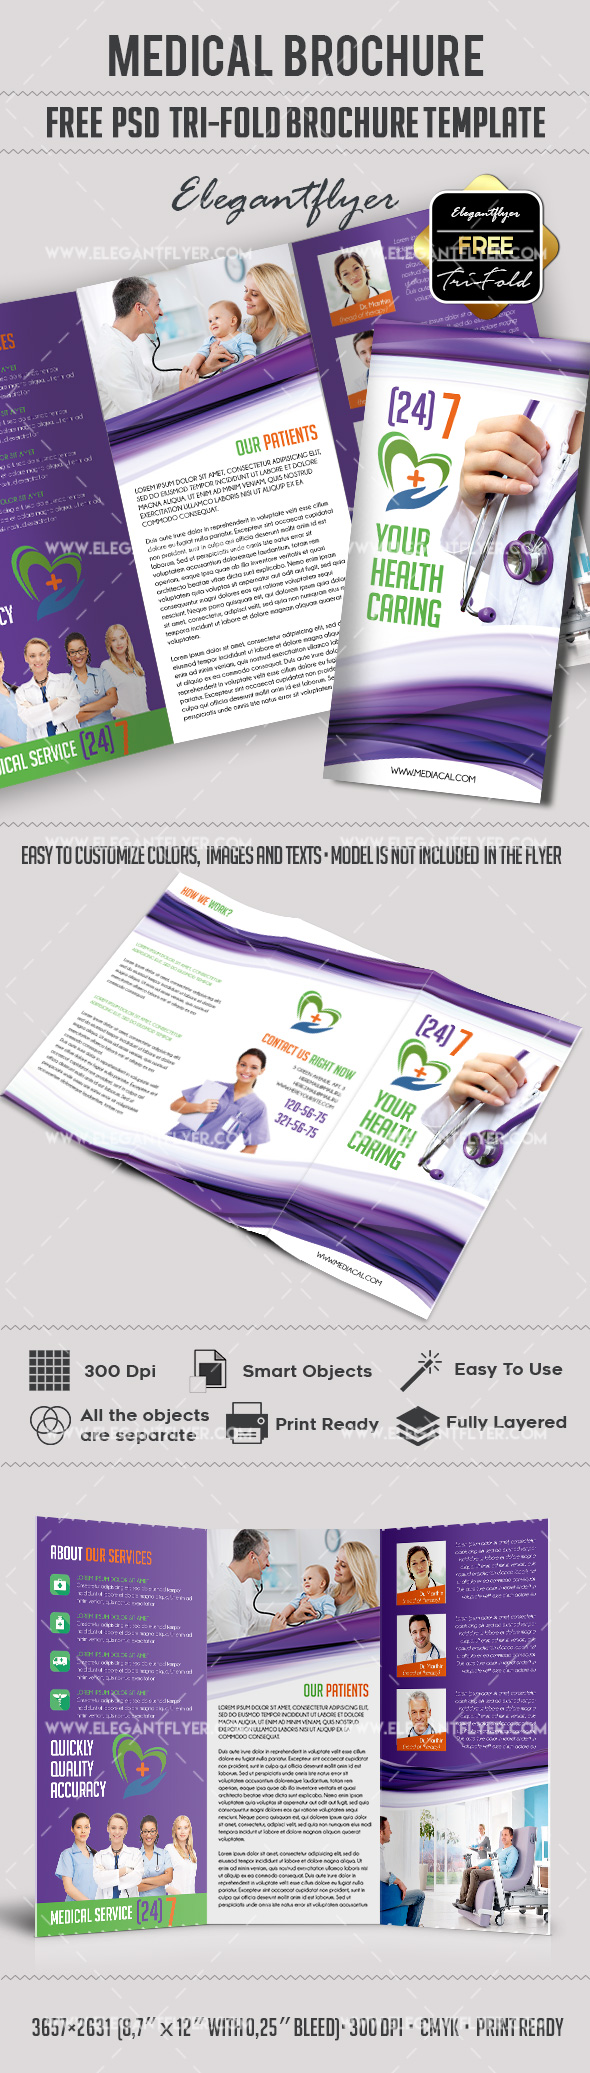 Medical free tri fold psd brochure template by for Free printable tri fold brochure template